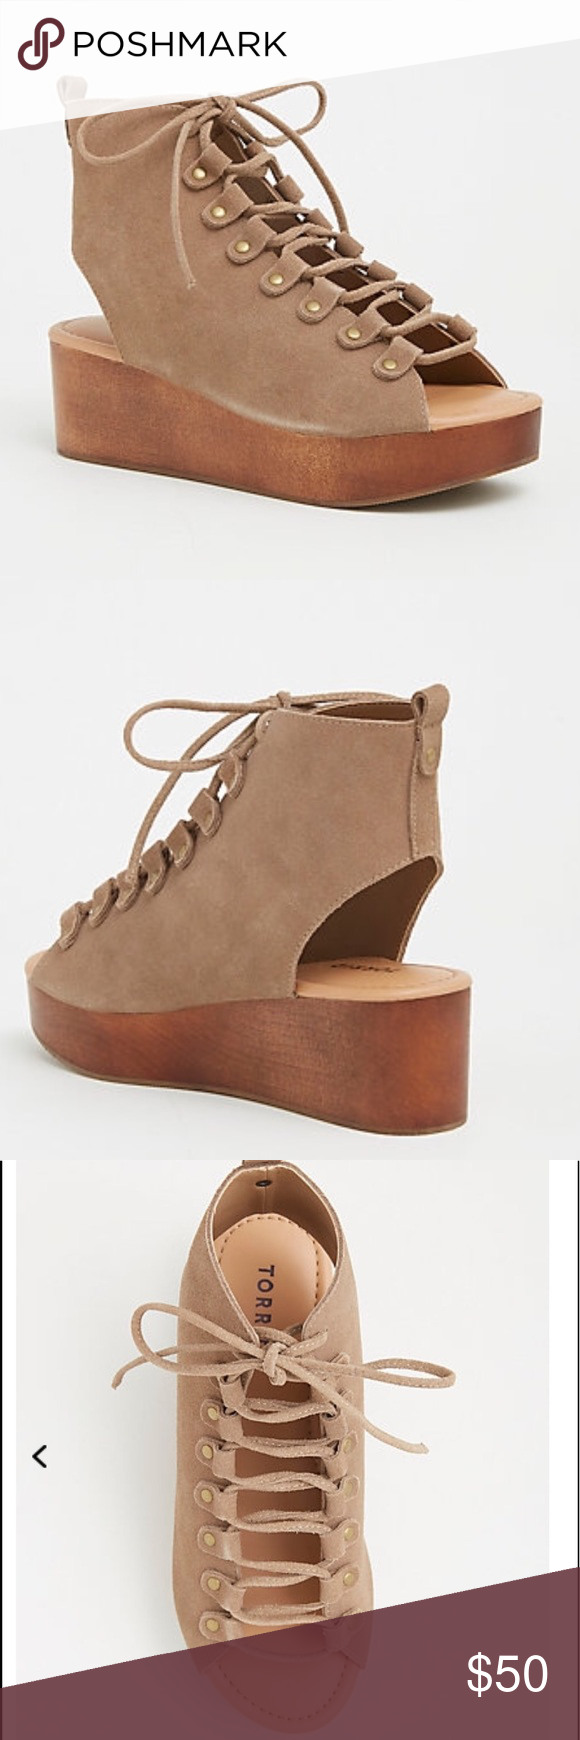 Genuine Suede Lace Up Wedges (Wide Width) Brand new without box. Never worn. torrid Shoes